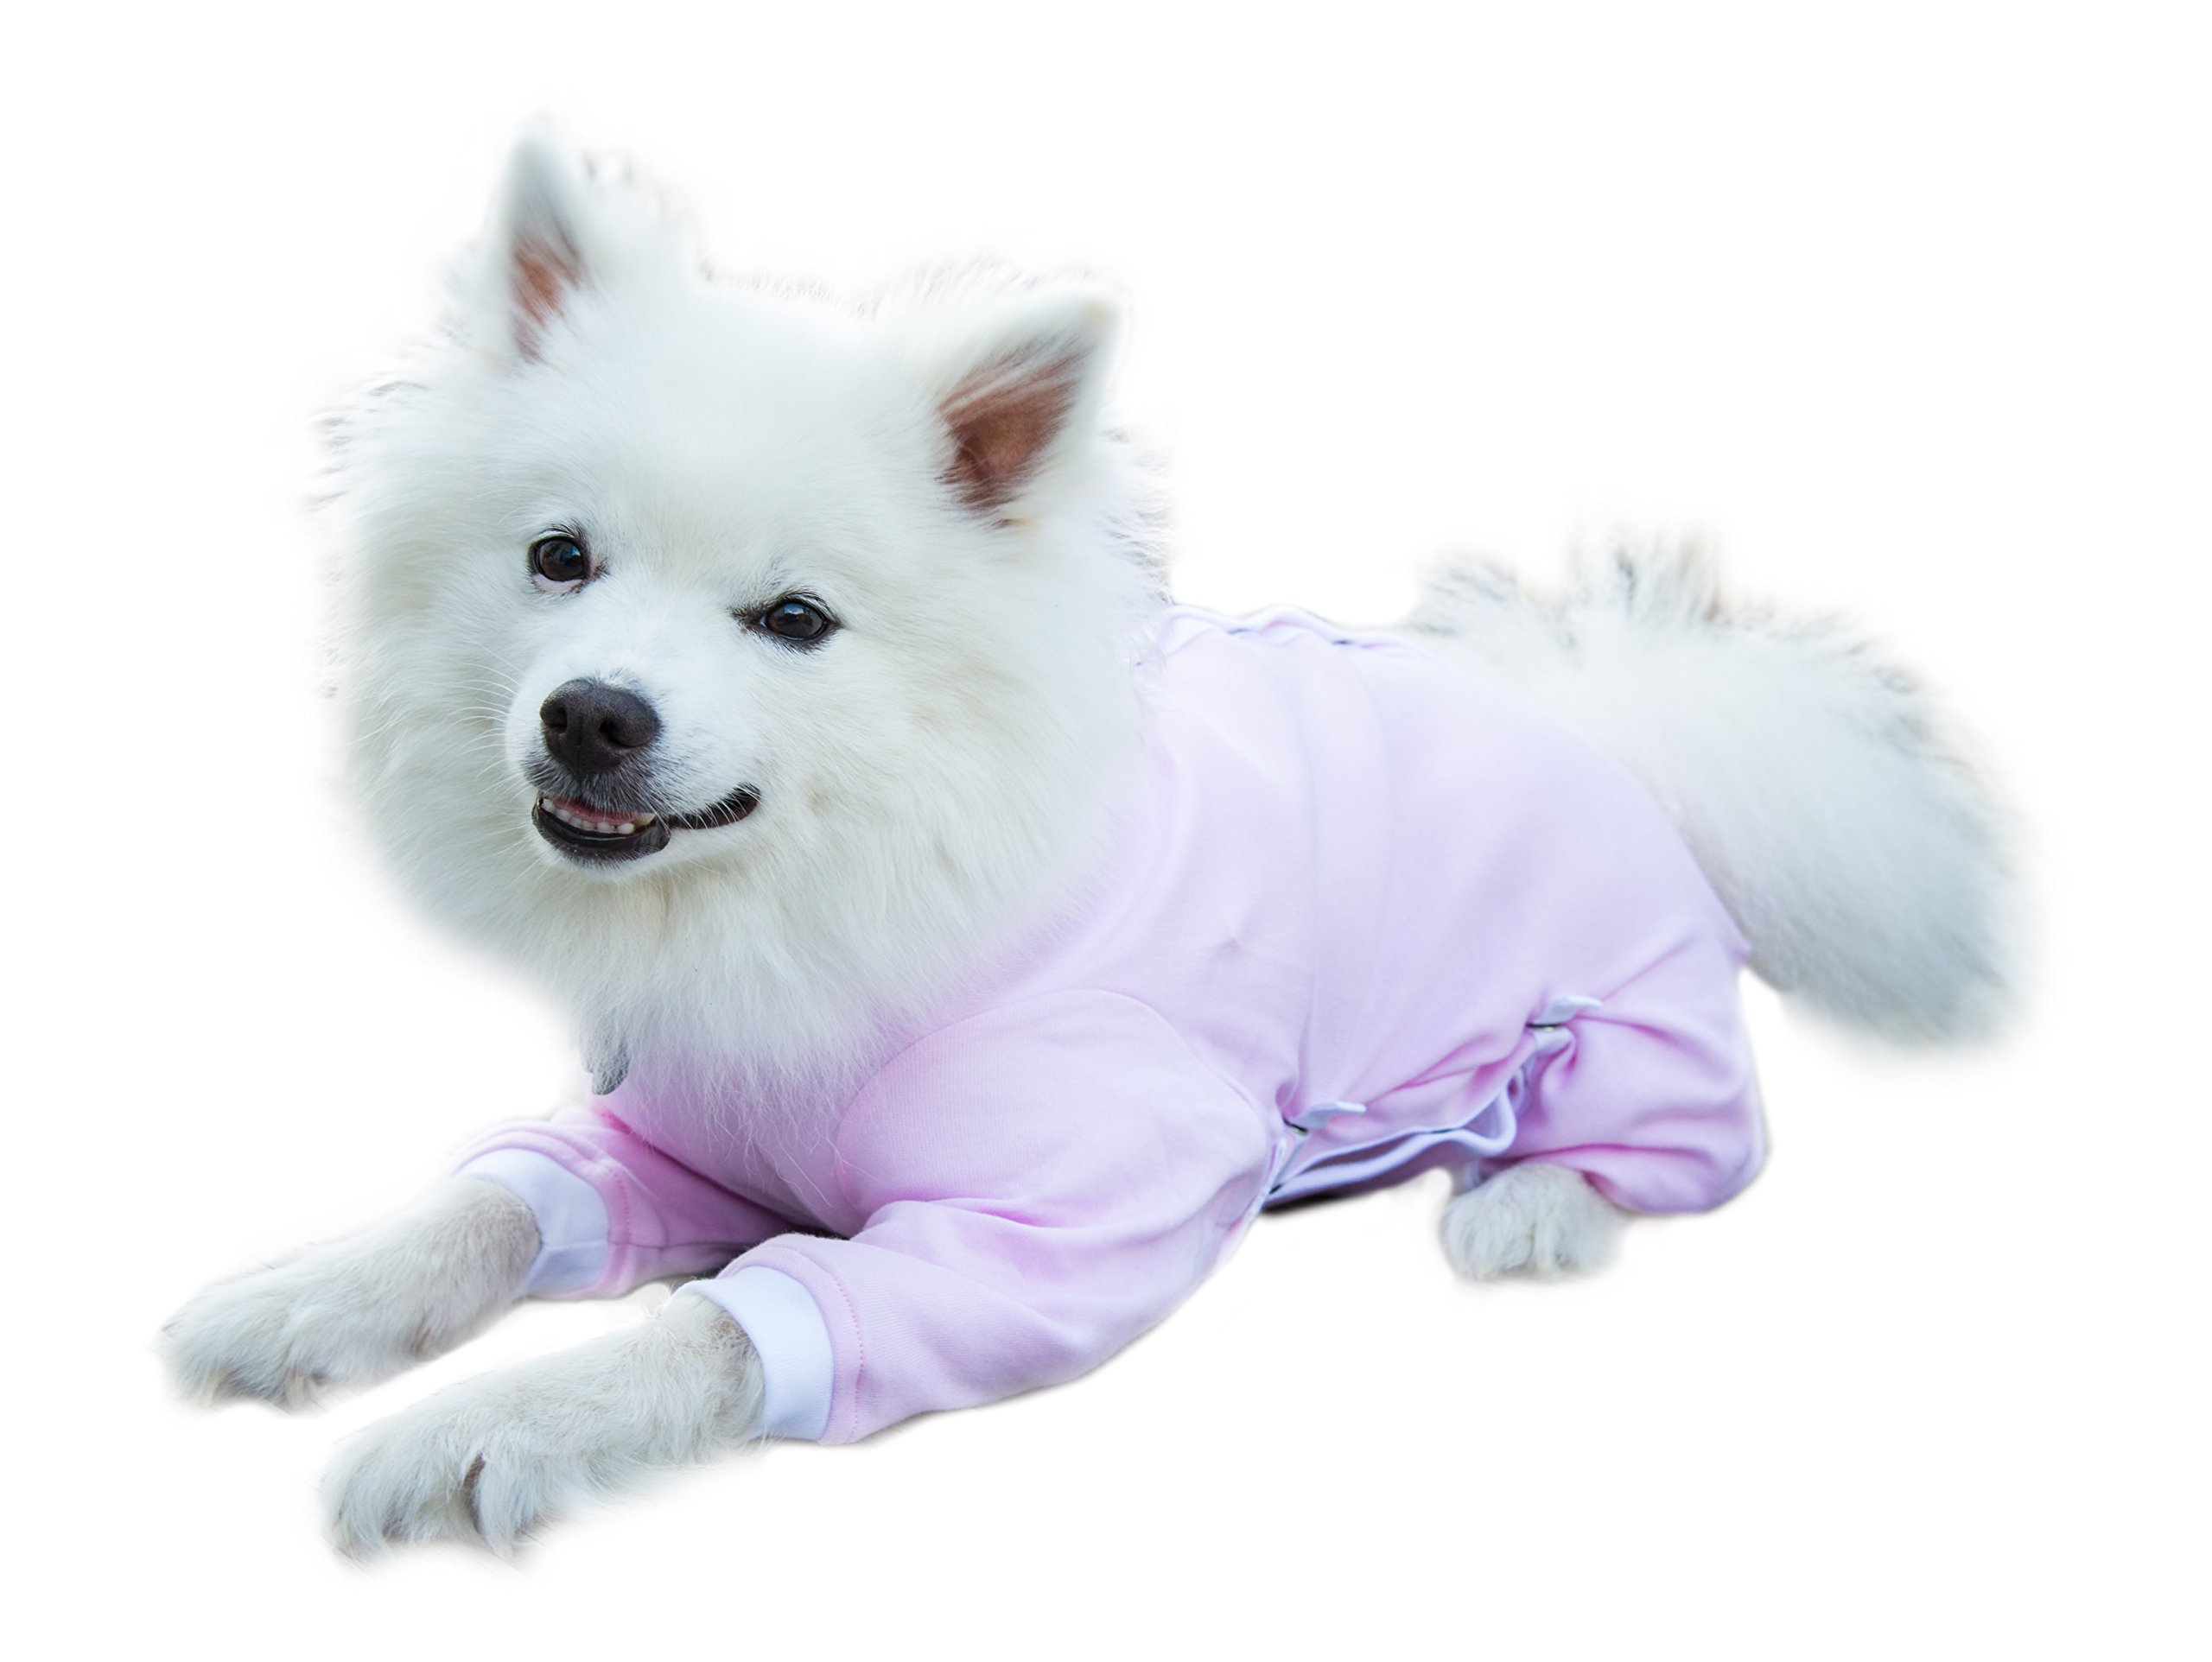 Cover Me by Tui Medical Pet Shirt Recovery Shirt Adjustable Fit Step-into with Short Sleeve for Pets, Medium, Pink by Cover Me by Tui  Adjustable Fit